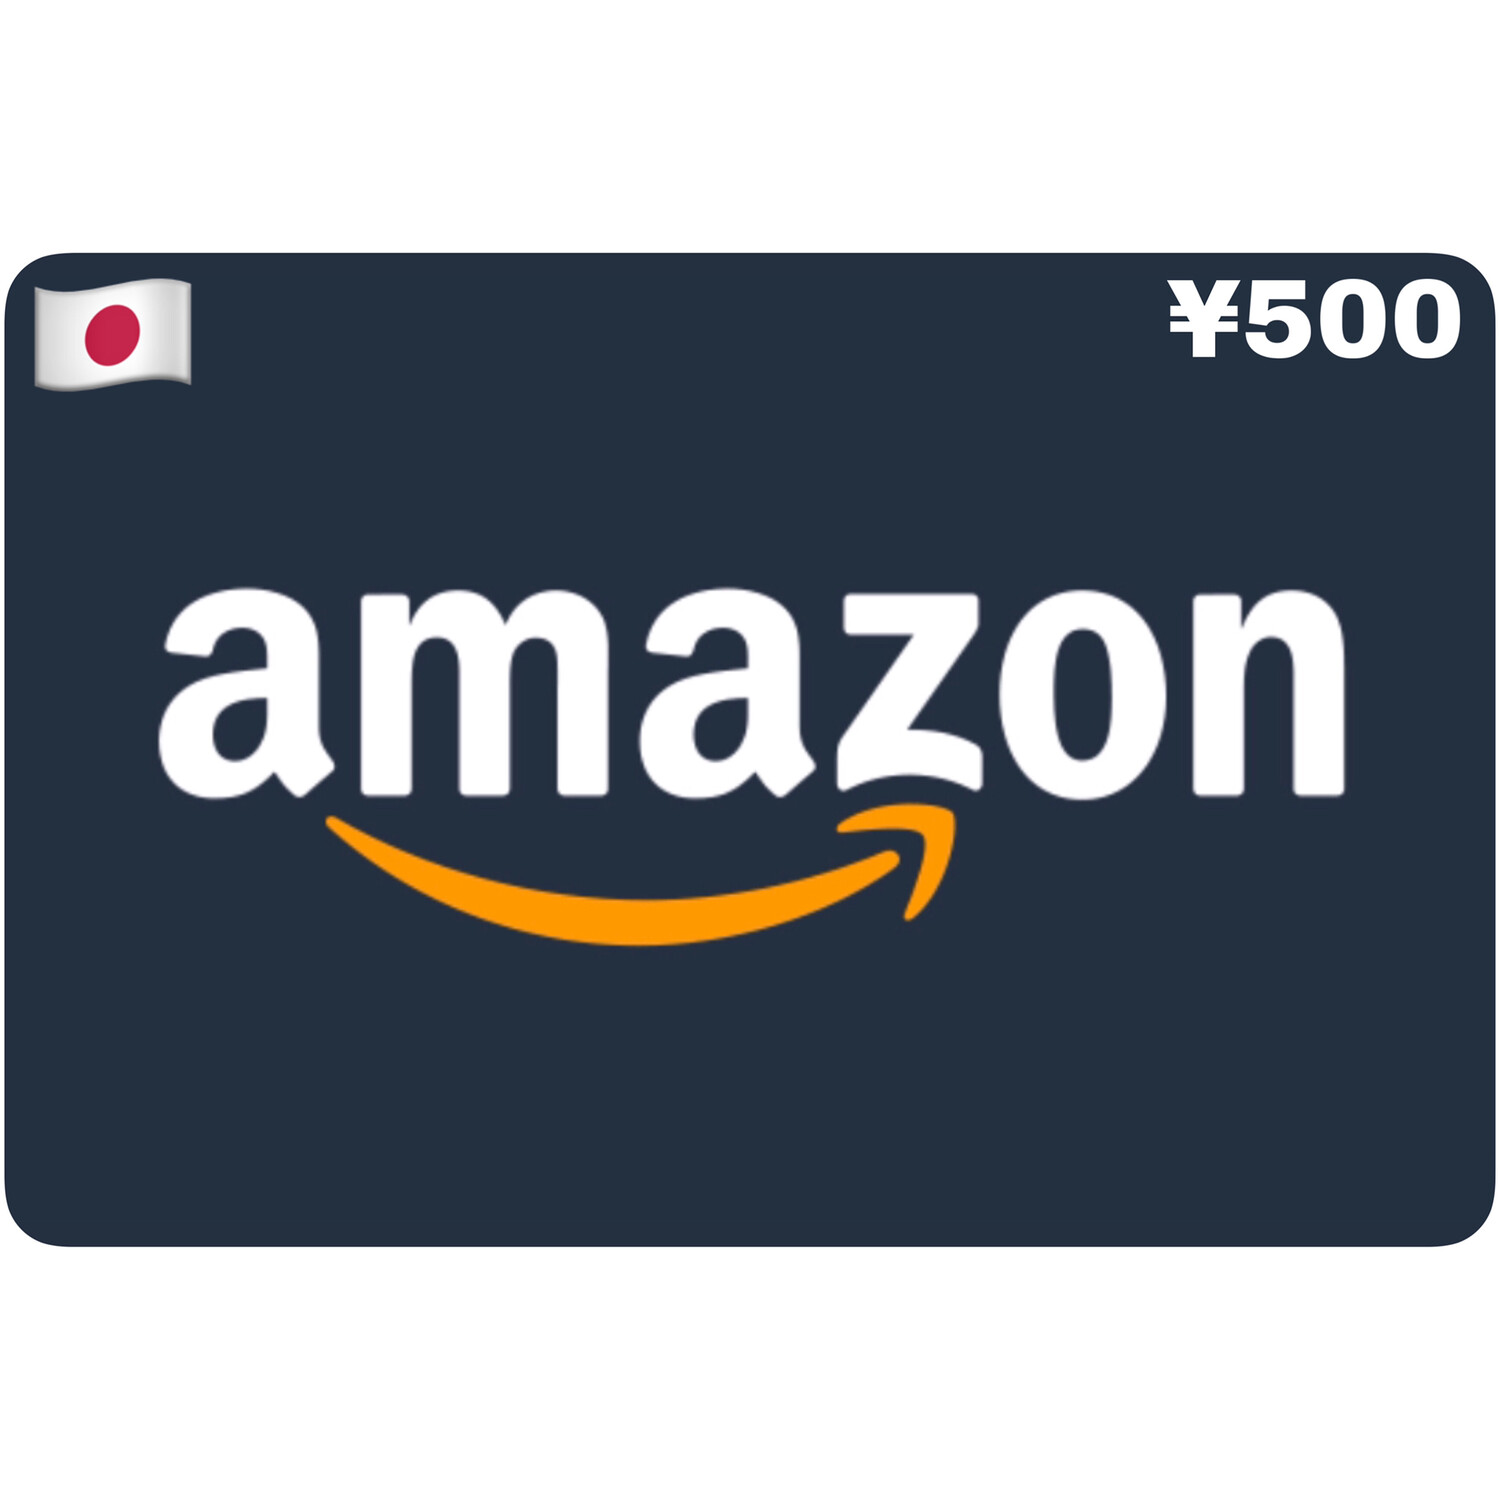 Amazon.co.jp Gift Card Japan ¥500 Yen